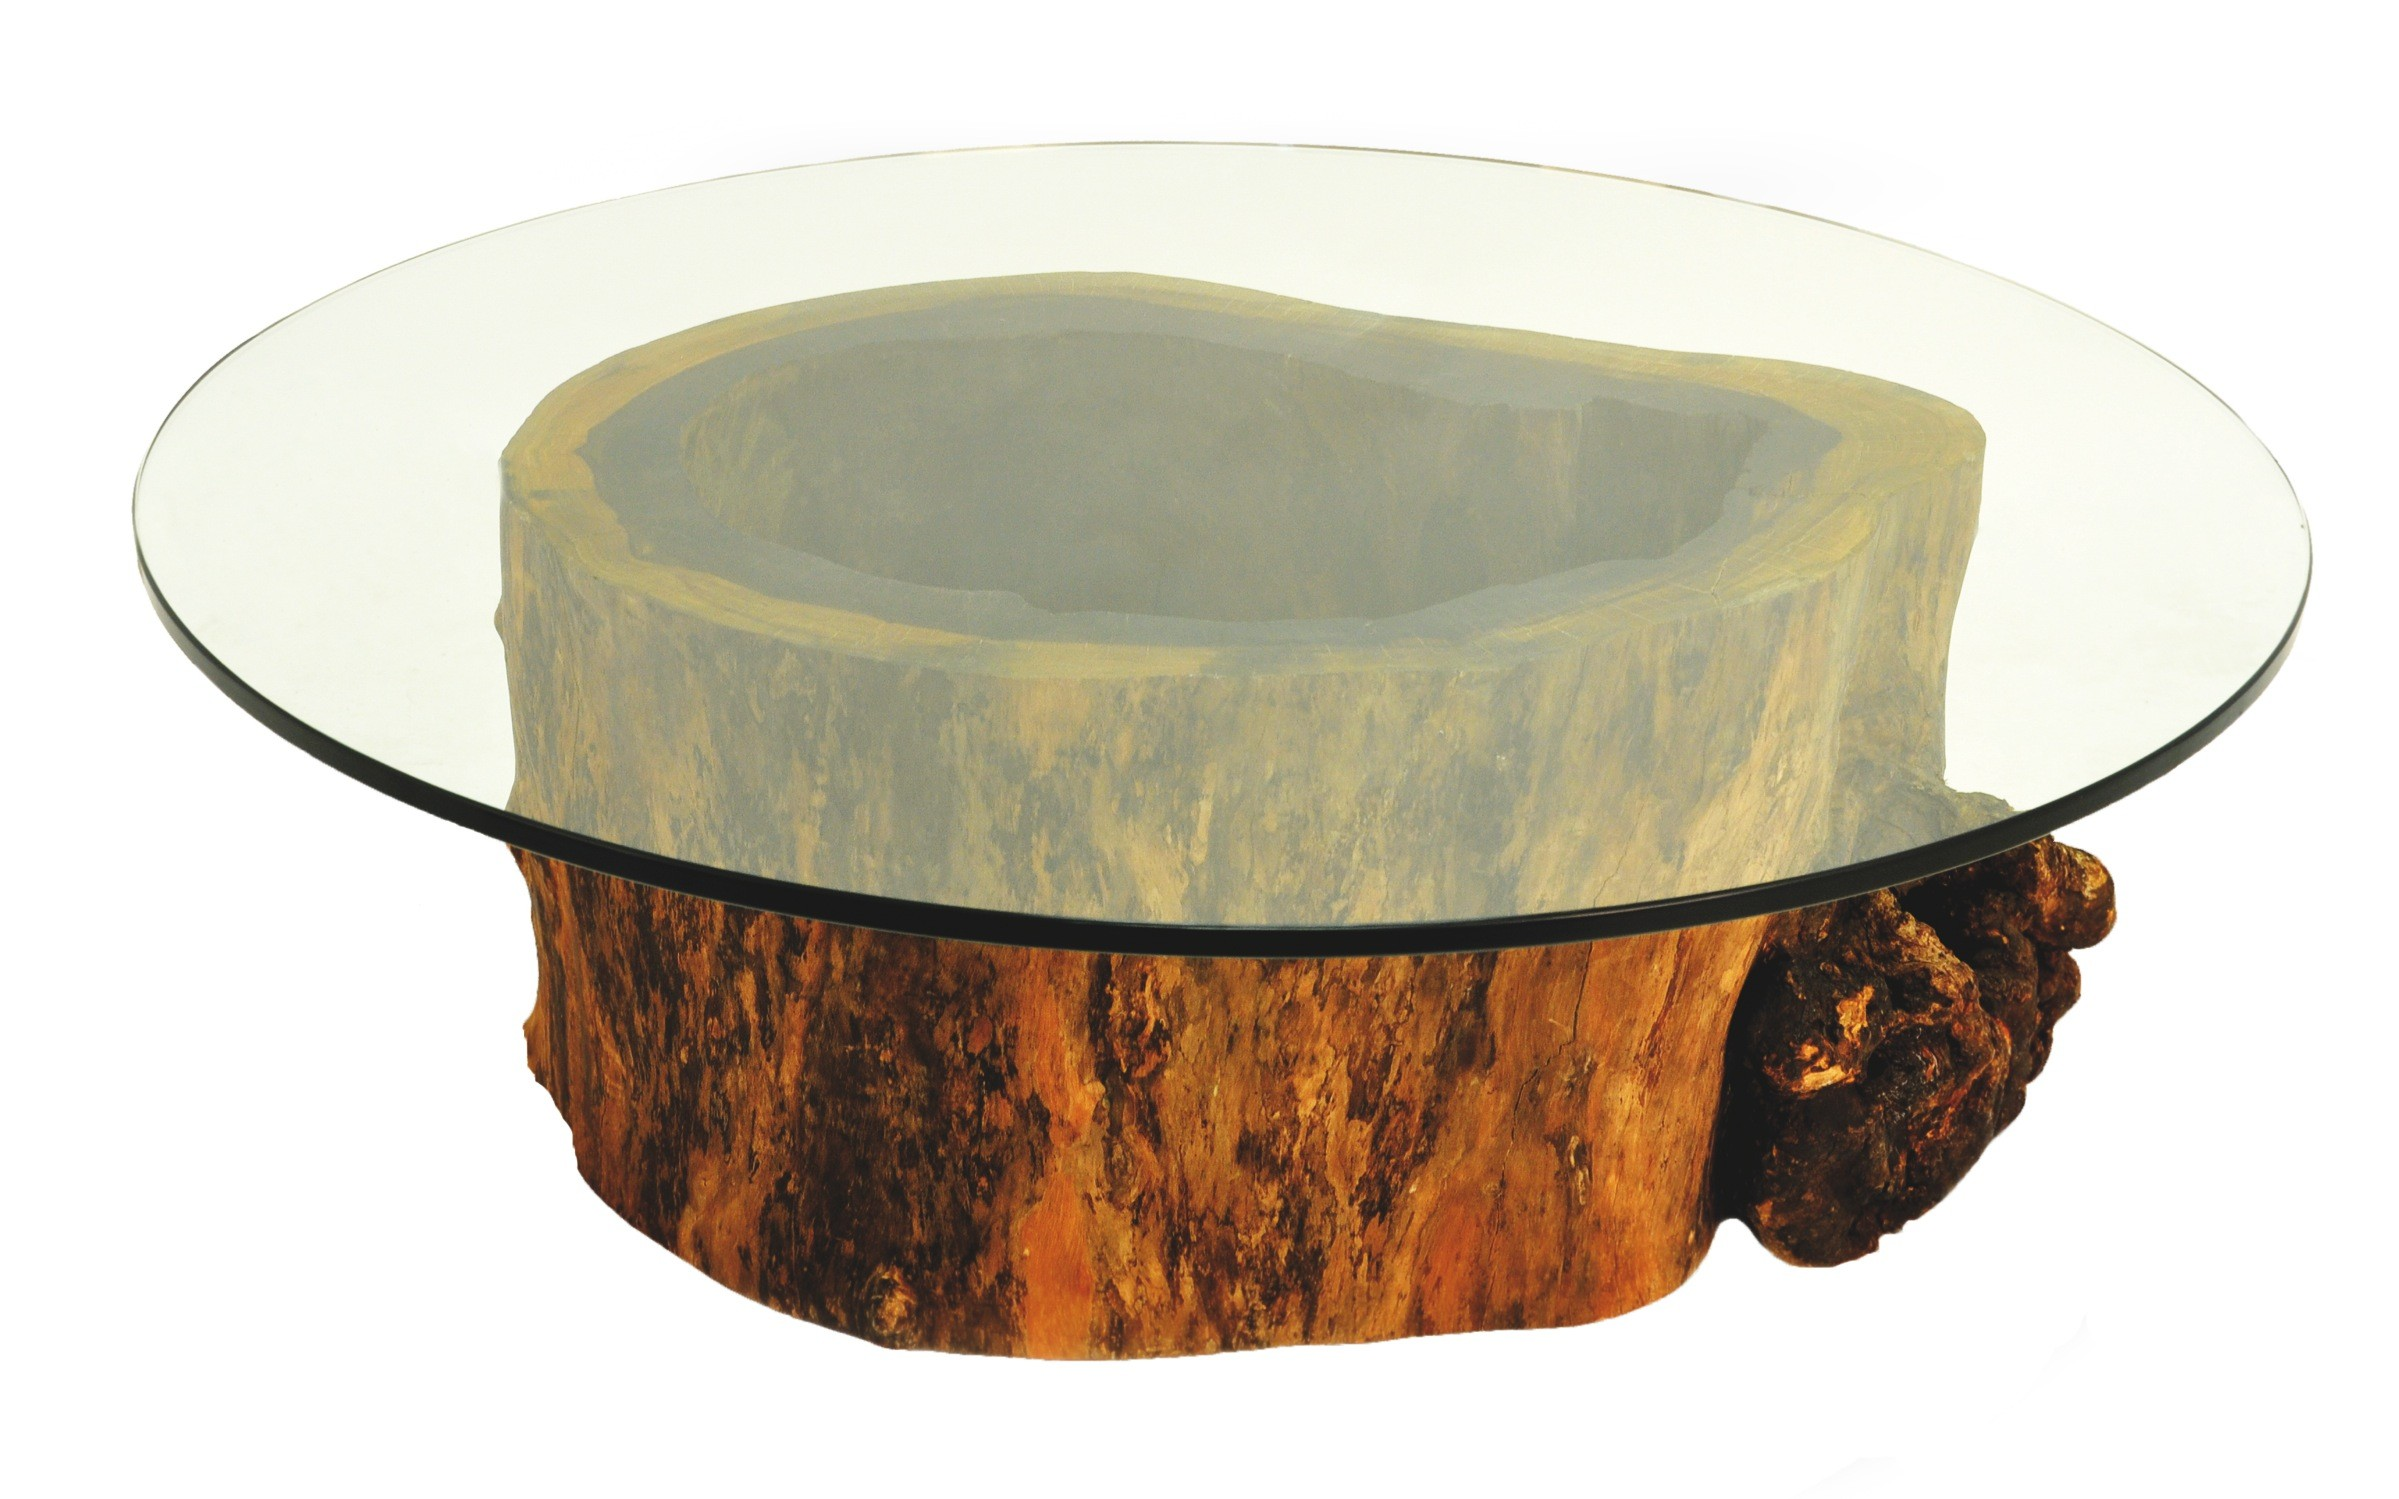 10 Best Round Glass Top Coffee Table with Wood Base